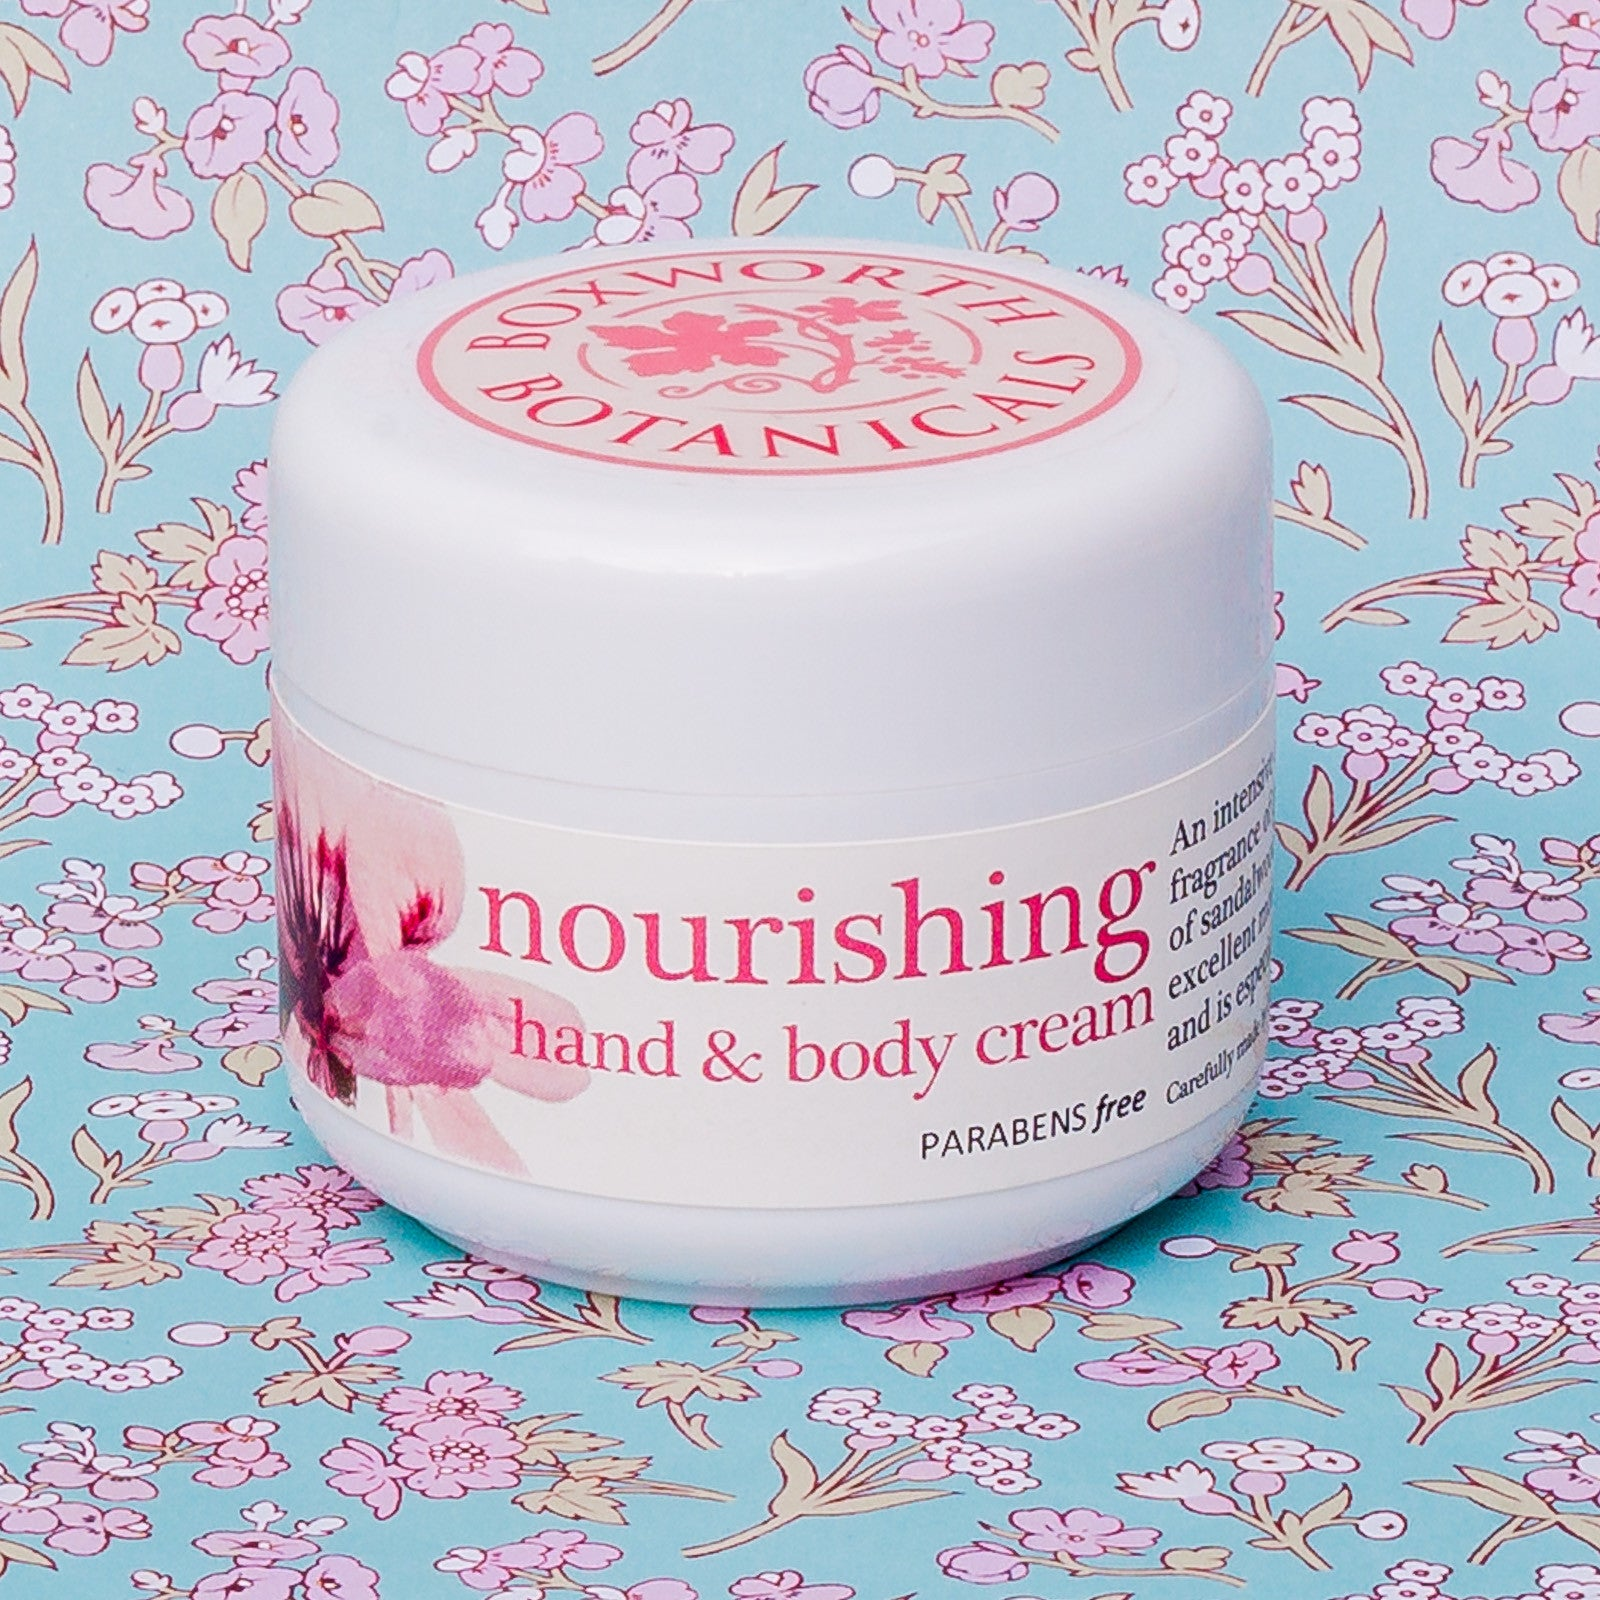 Nourishing Hand Cream in handbag size 30ml pump